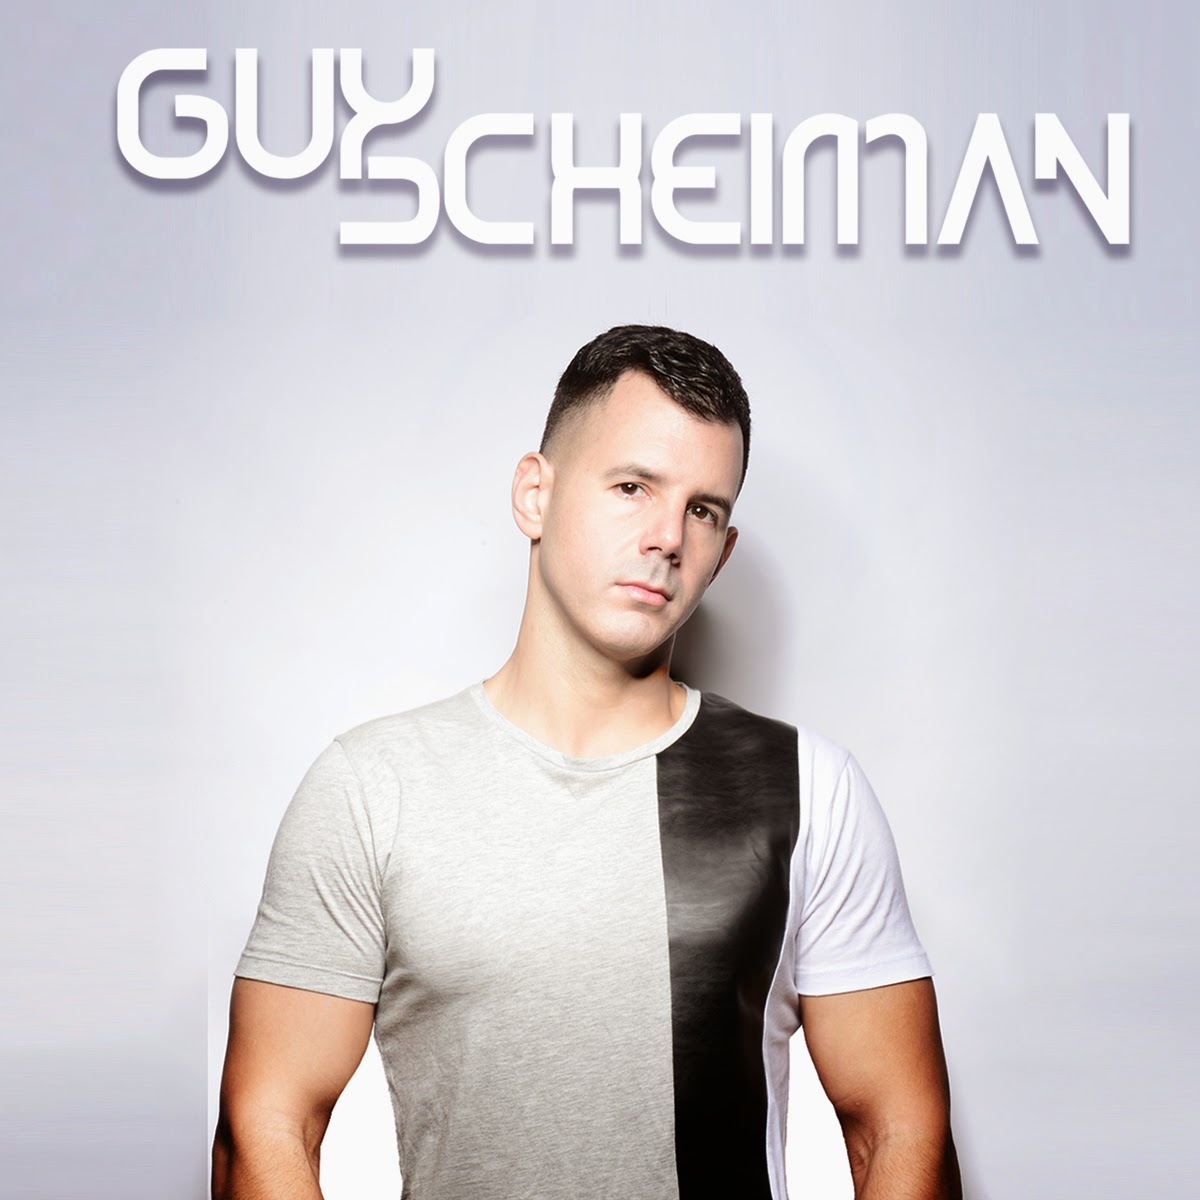 DJ Guy Scheiman - THE SOUND OF MY LIFE